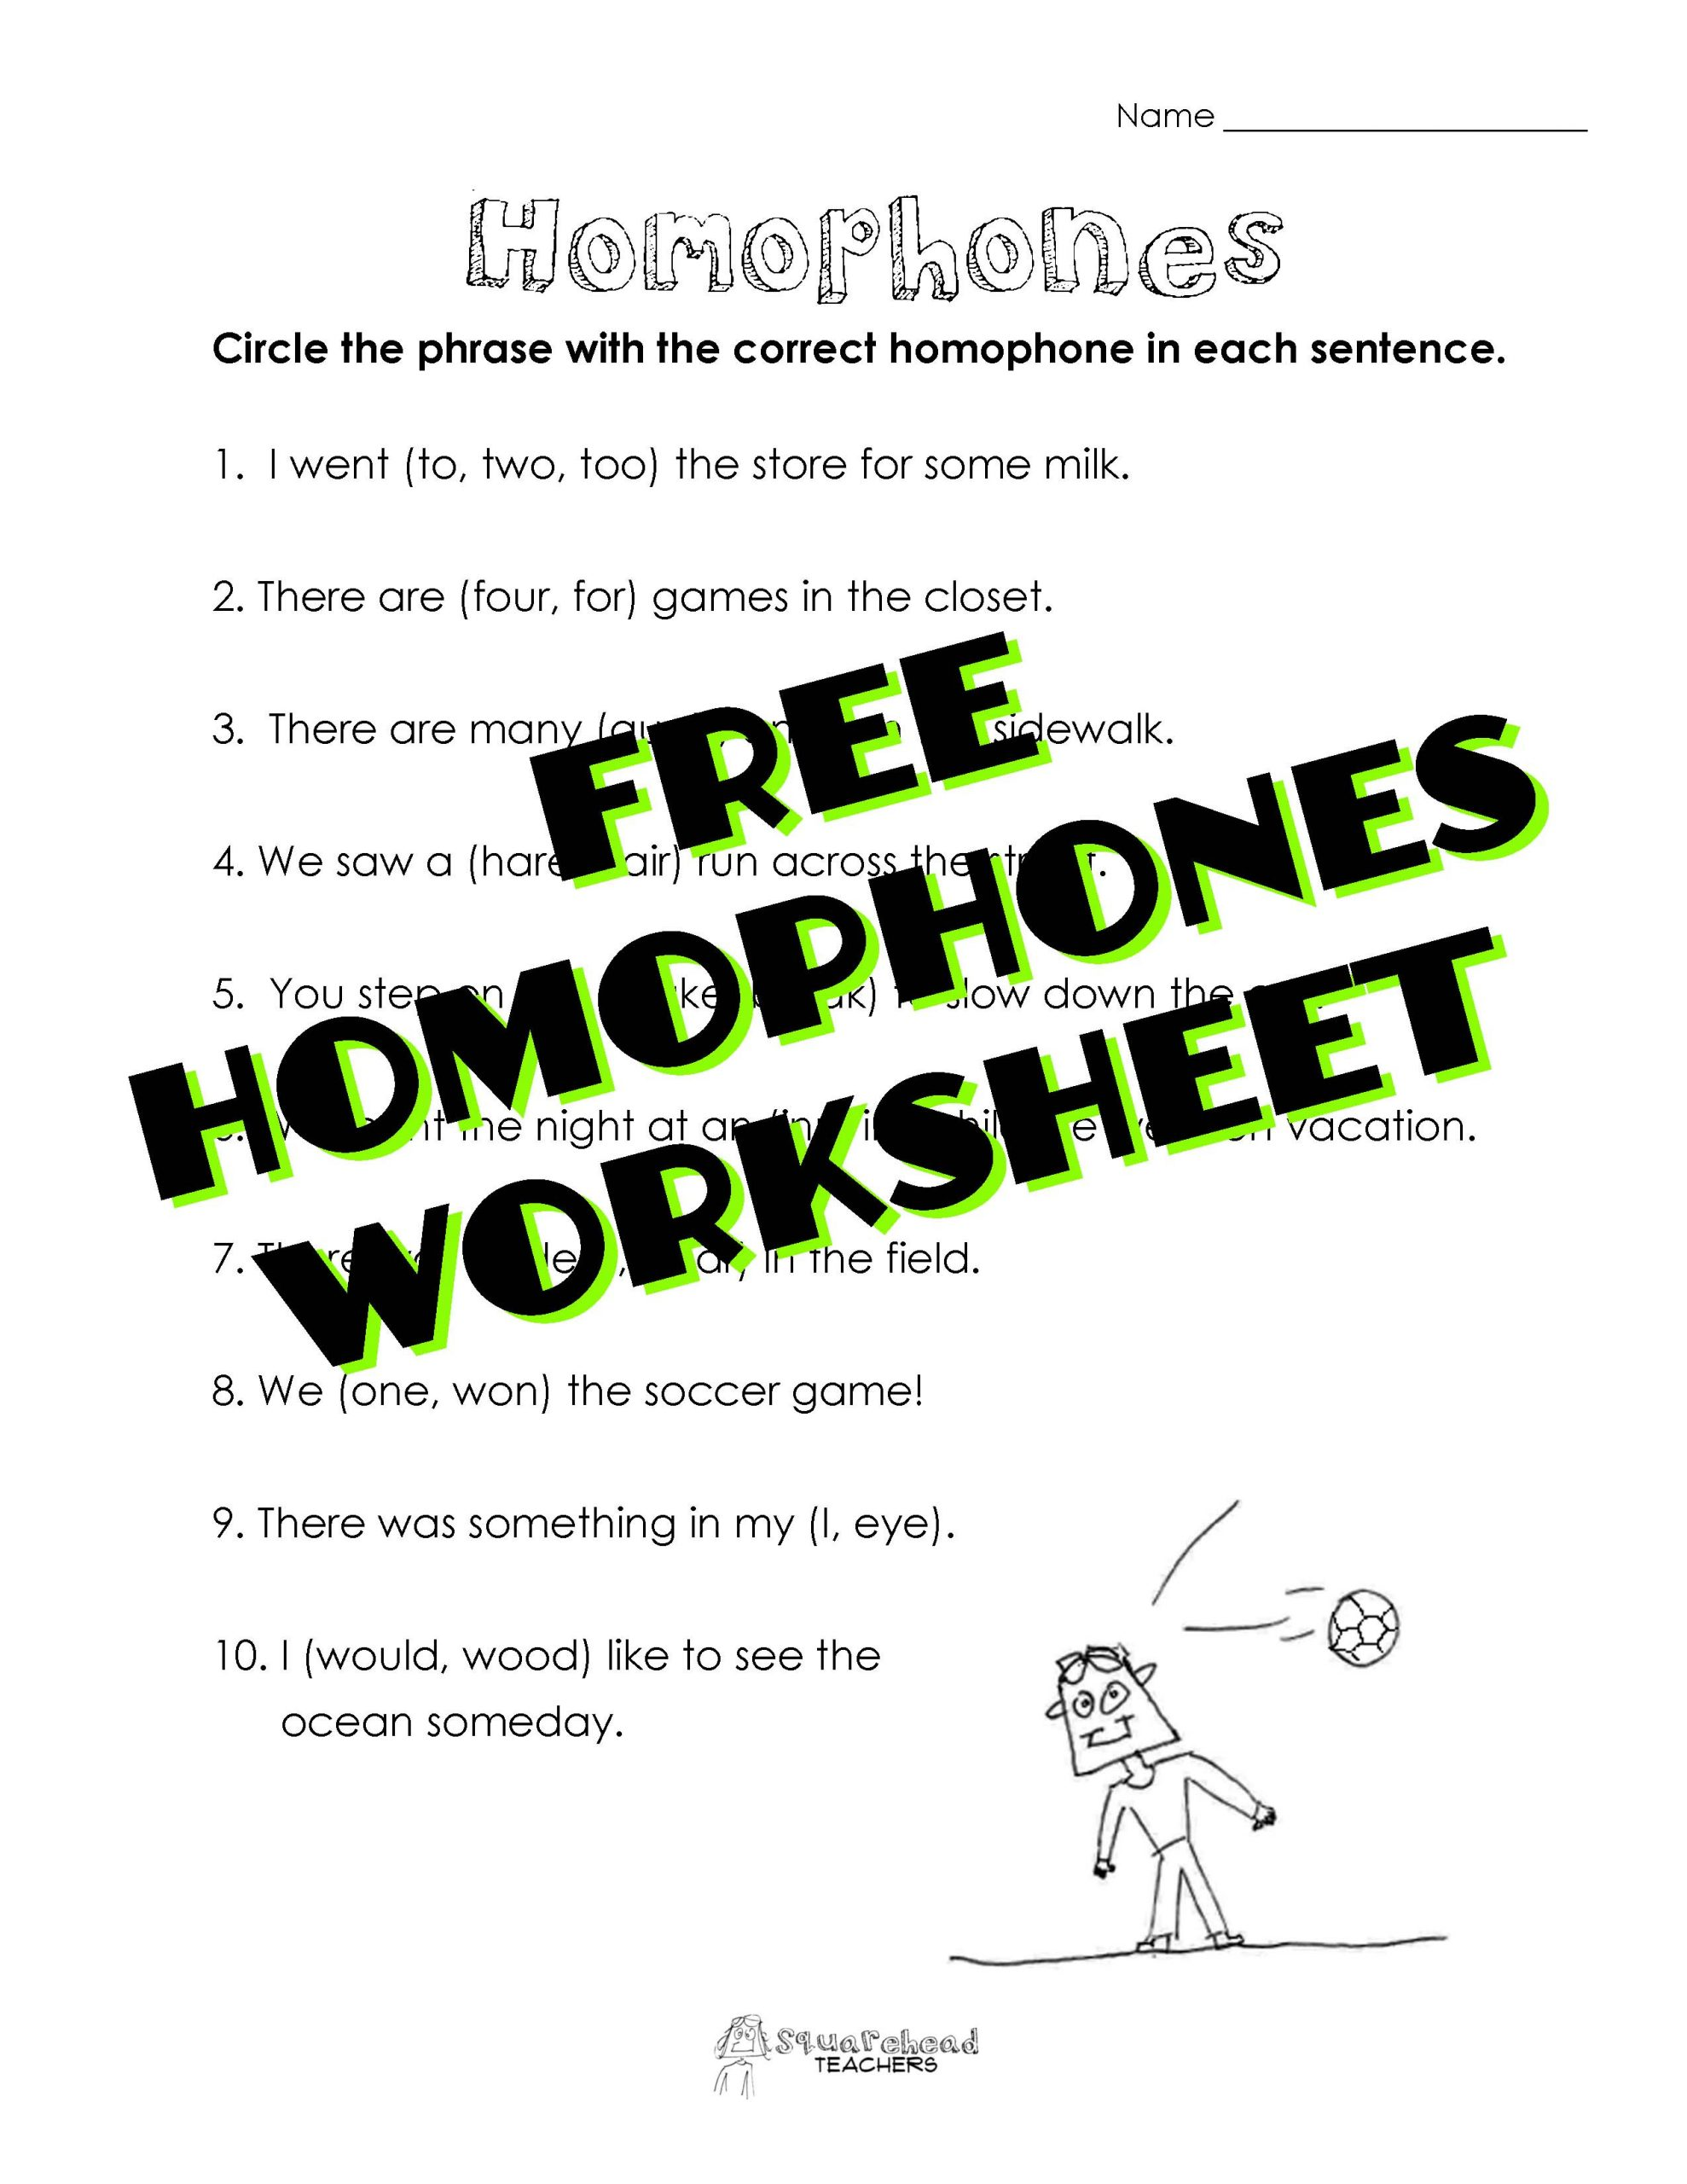 Homophones Worksheet 4th Grade Homophones Worksheet